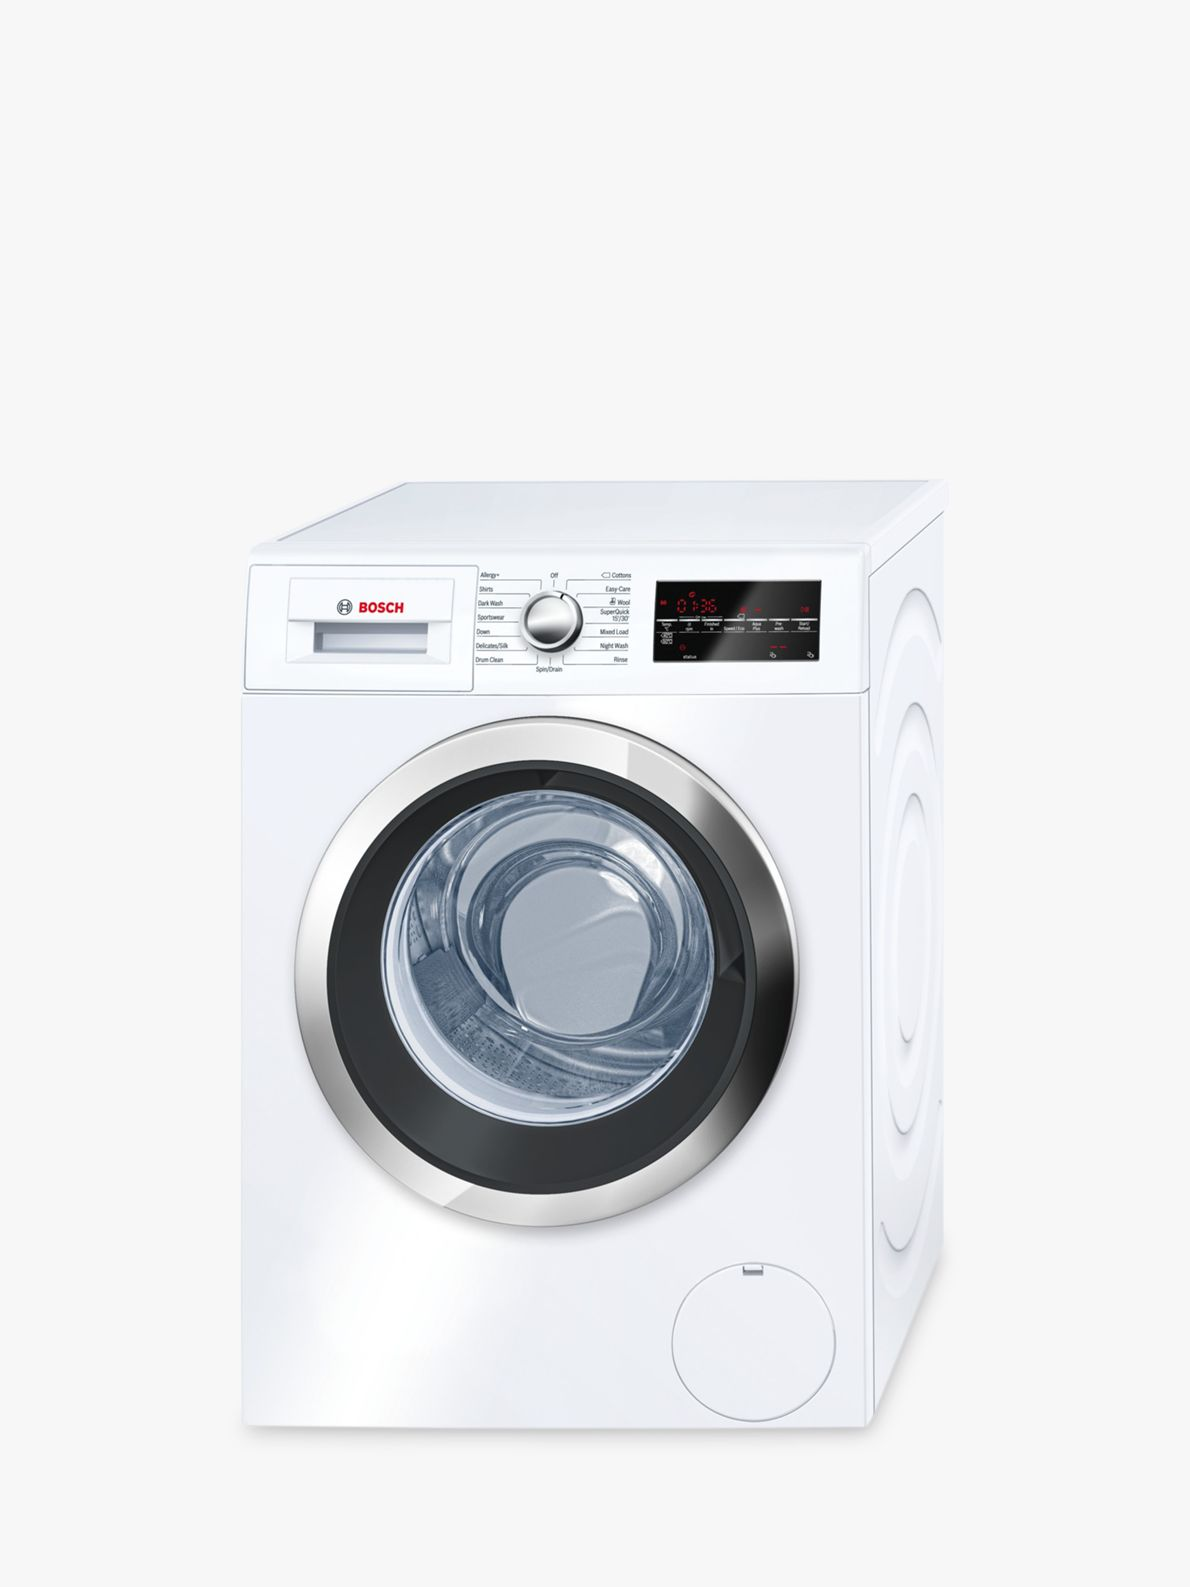 Bosch Bosch WAT32480GB Freestanding Washing Machine, 9kg Load, A+++ Energy Rating, 1600rpm Spin, White